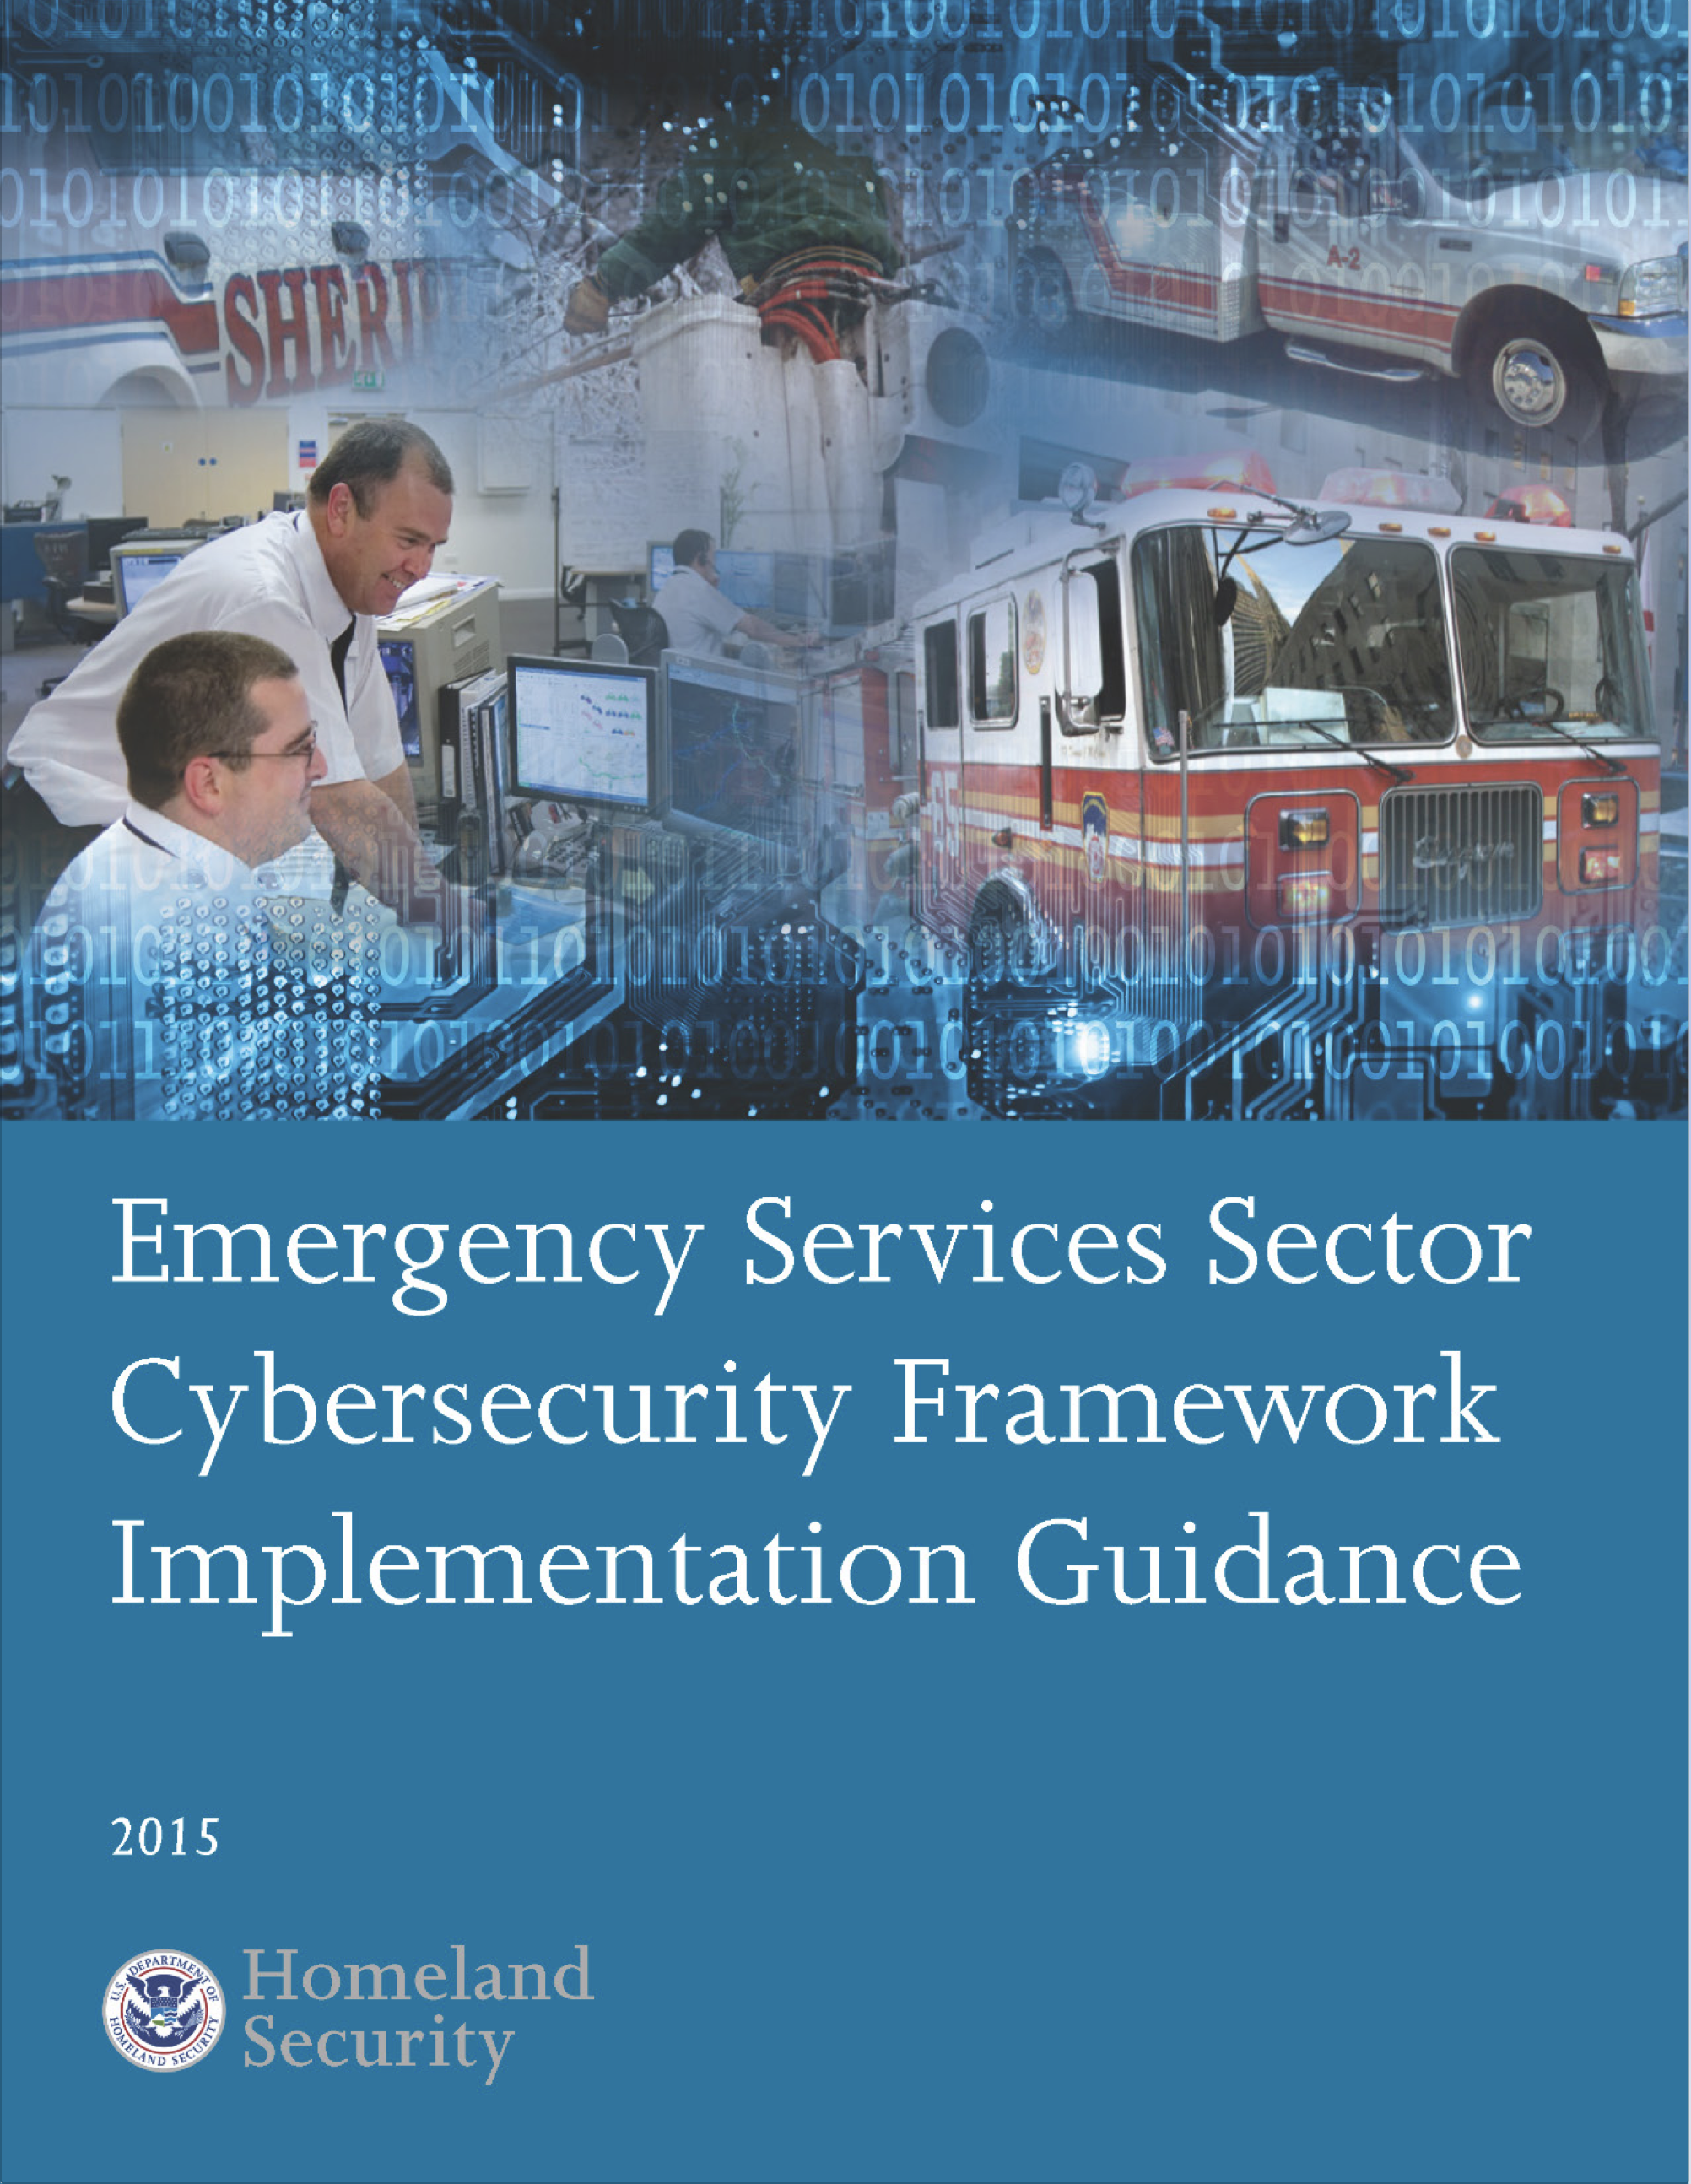 DHS: Implementation Guidance